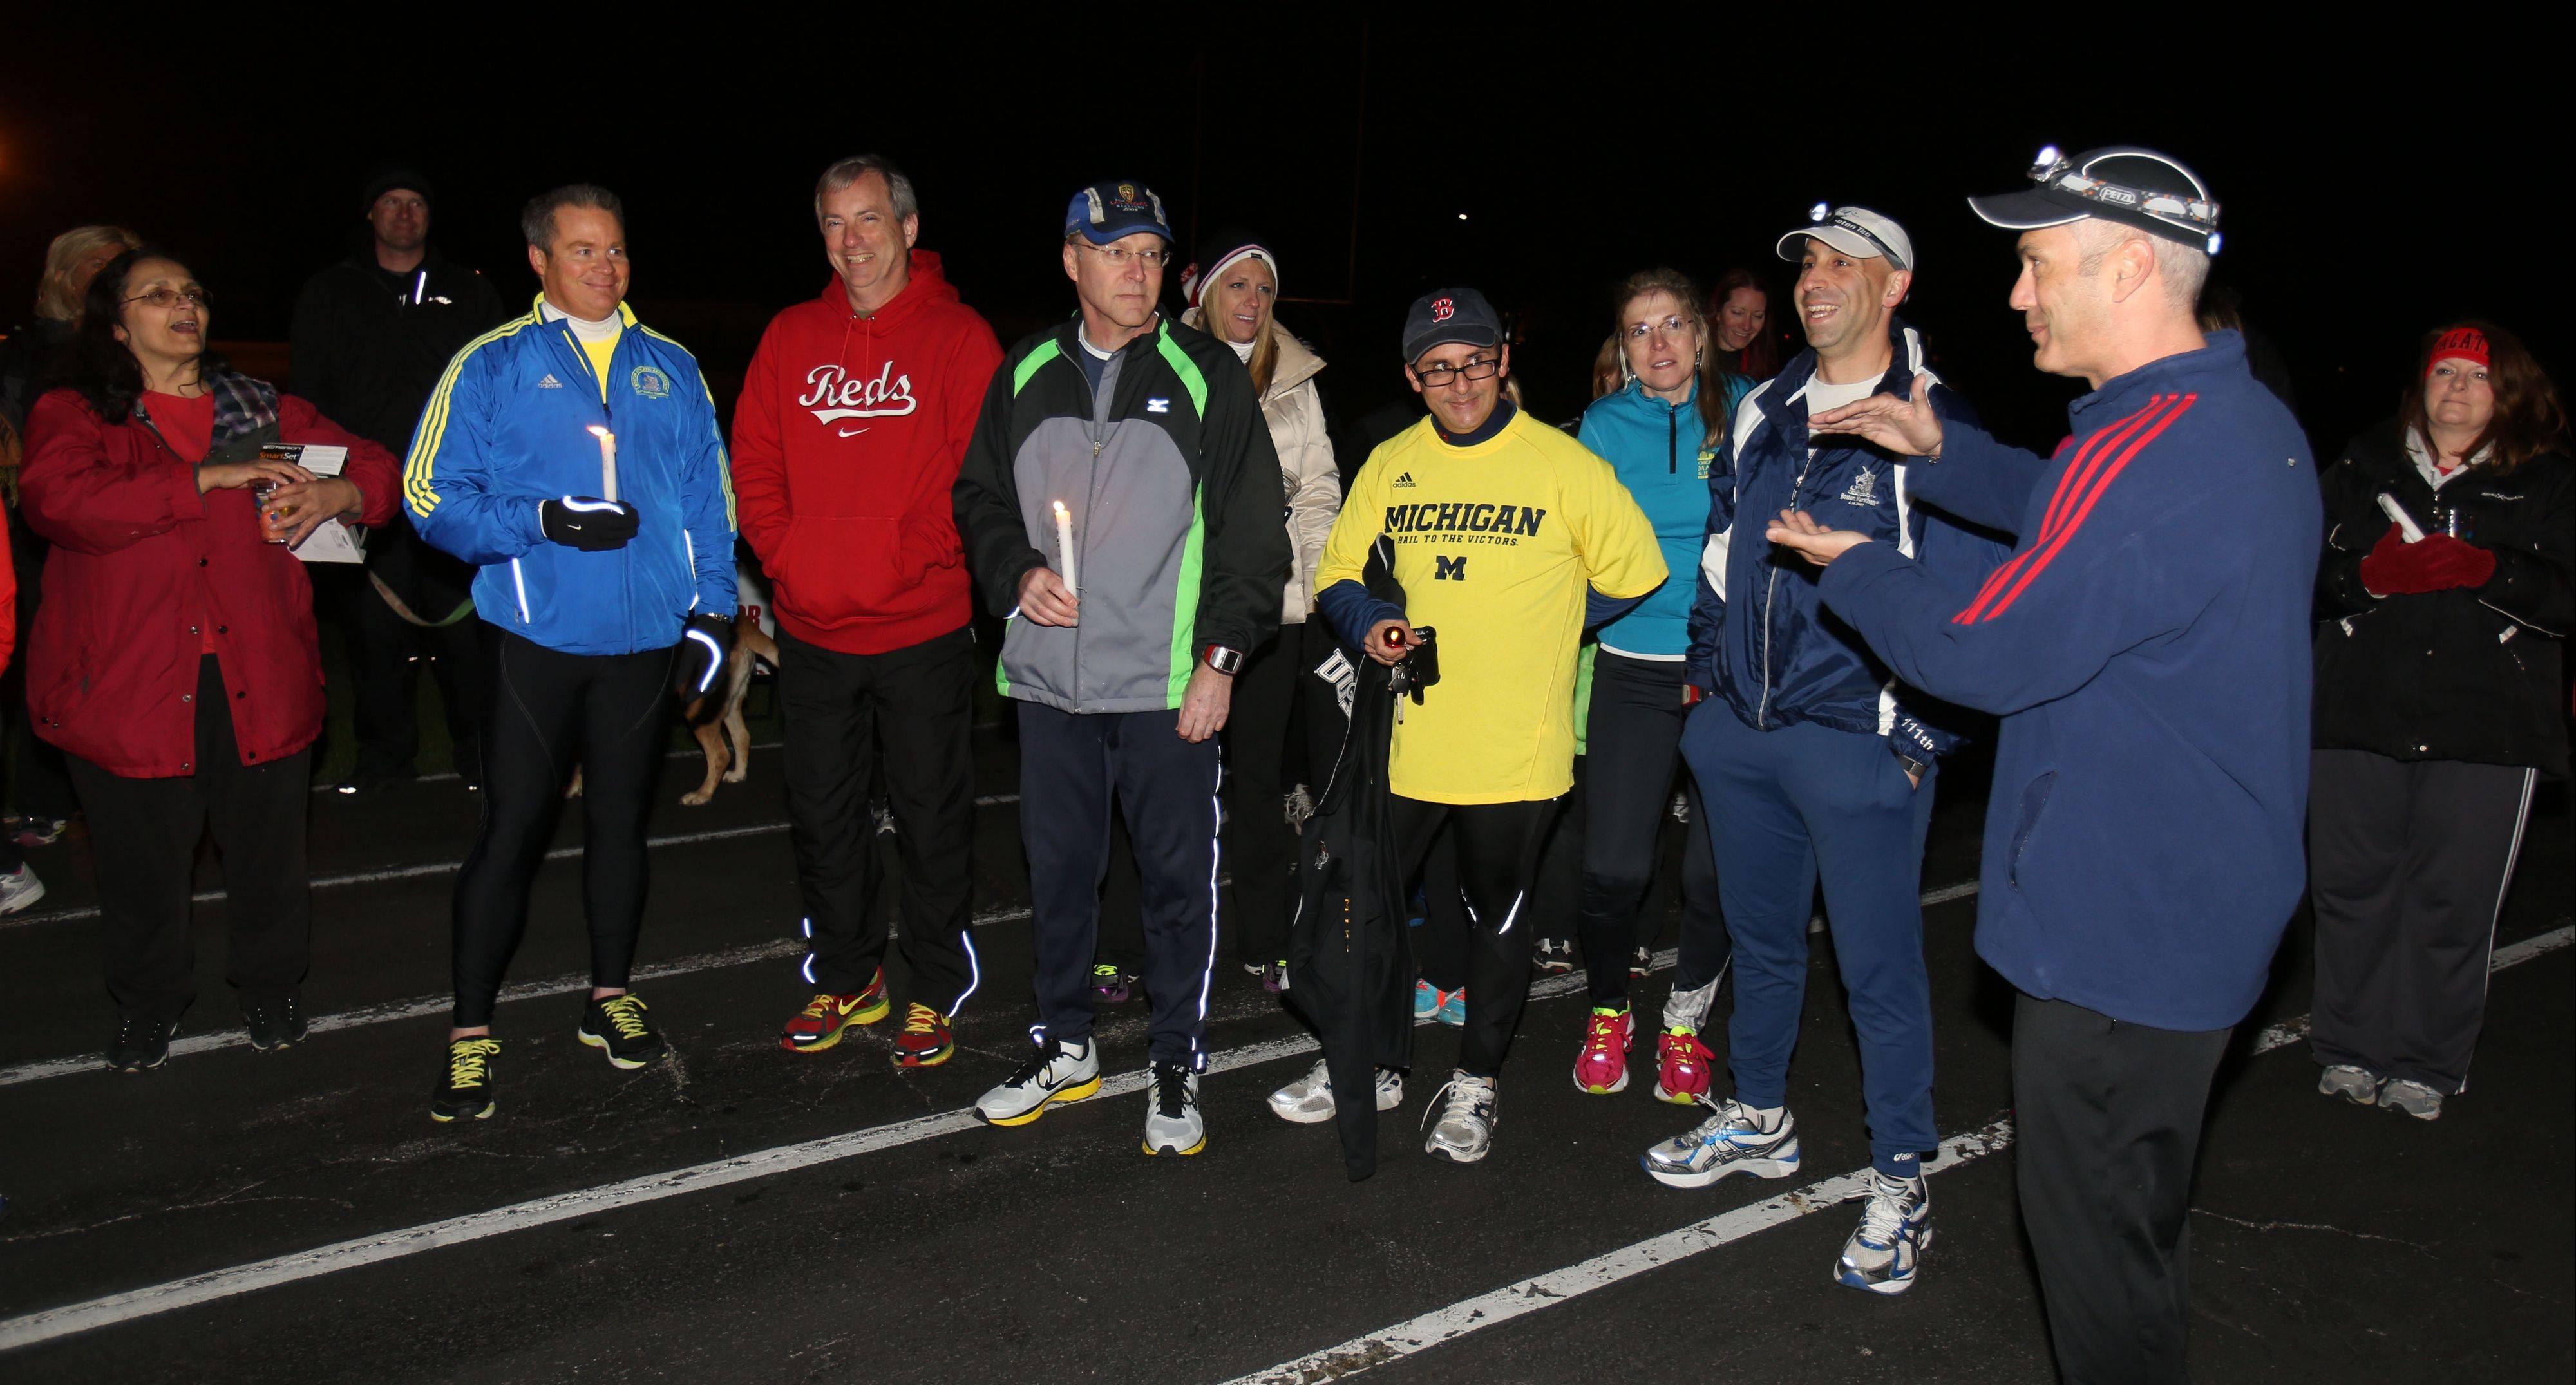 Members of the Hoffman Estates, Inverness and Palatine, or HIP, Athletic Association gather as they hold a memorial run on the track at the old Palatine High School for the victims of the Boston Marathon bombings.